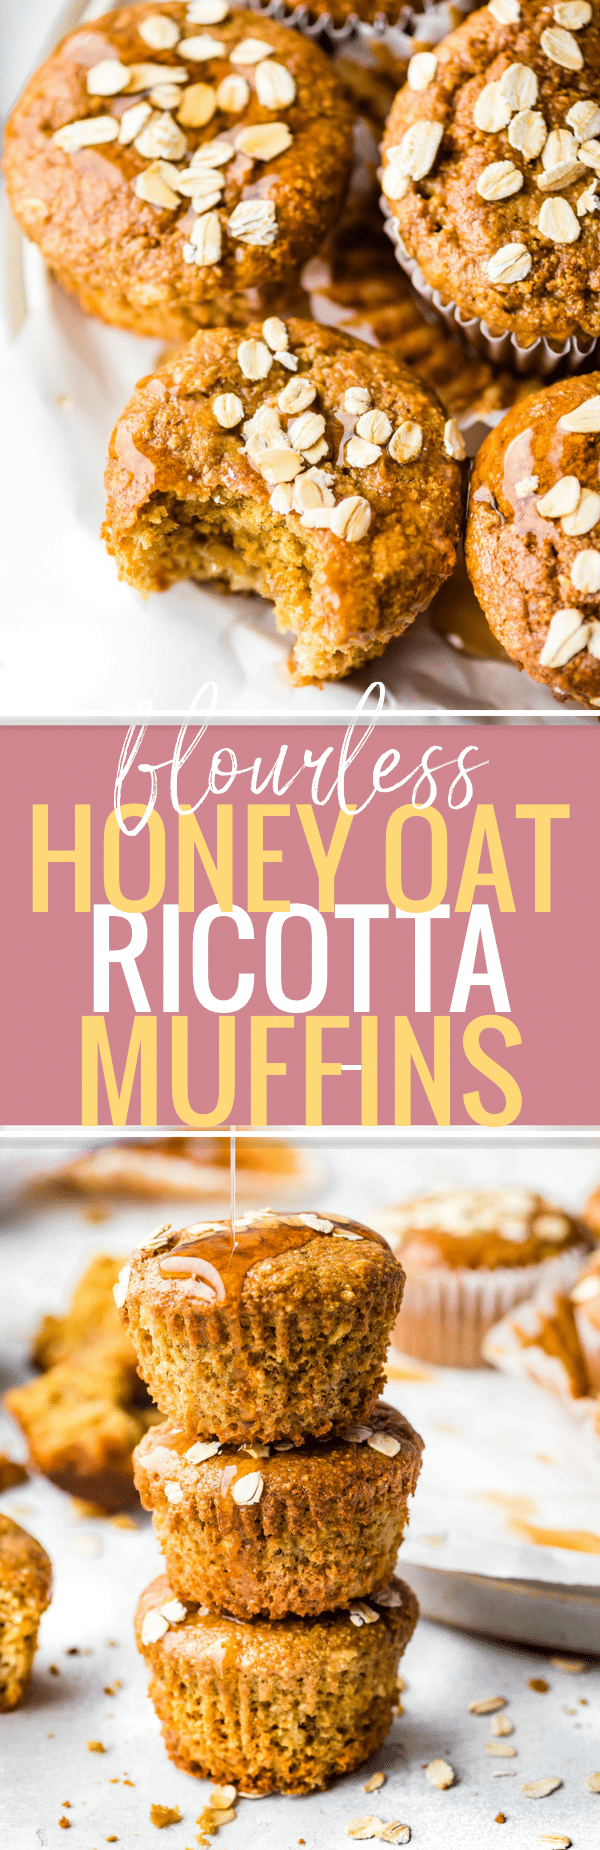 These Flourless Honey Oat Ricotta Muffins are easy to make for a healthy breakfast or snack! A Gluten-free Ricotta Muffins recipe that's honey sweetened and rich in protein, fiber, and calcium. Flourless baking made quick and simple. www.cottercrunch.com